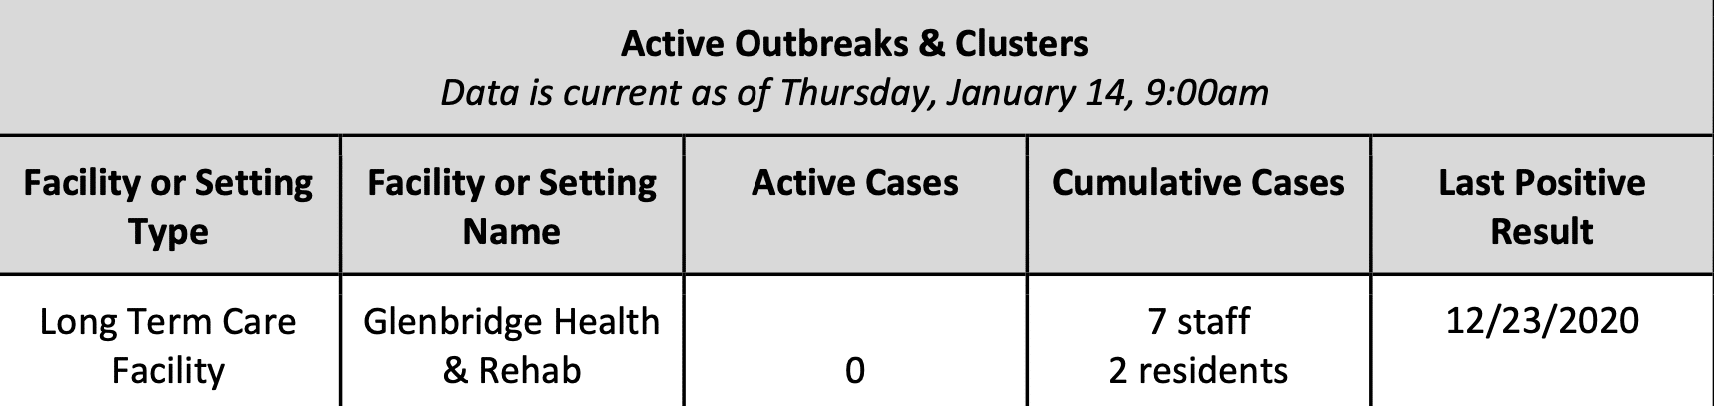 Saturday January 16, 2021 - Appalachian State, Watauga, Alleghany & Ashe COVID-19 Cases Data